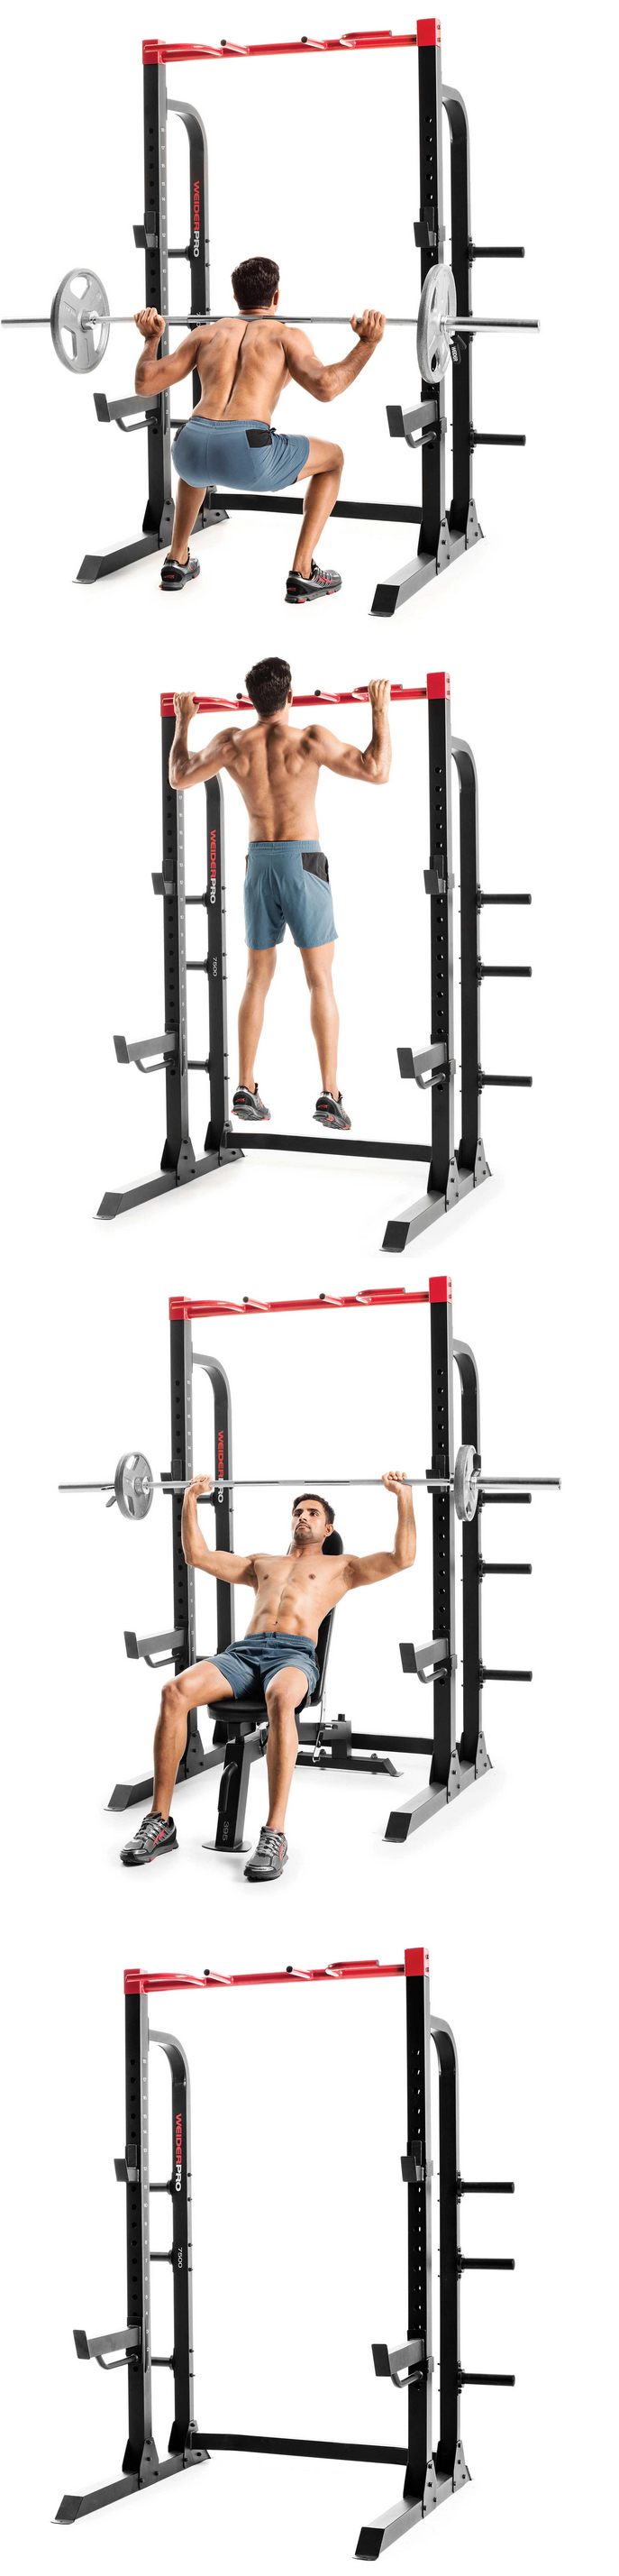 Weight Storage Weider Pro Half Rack Home Gym